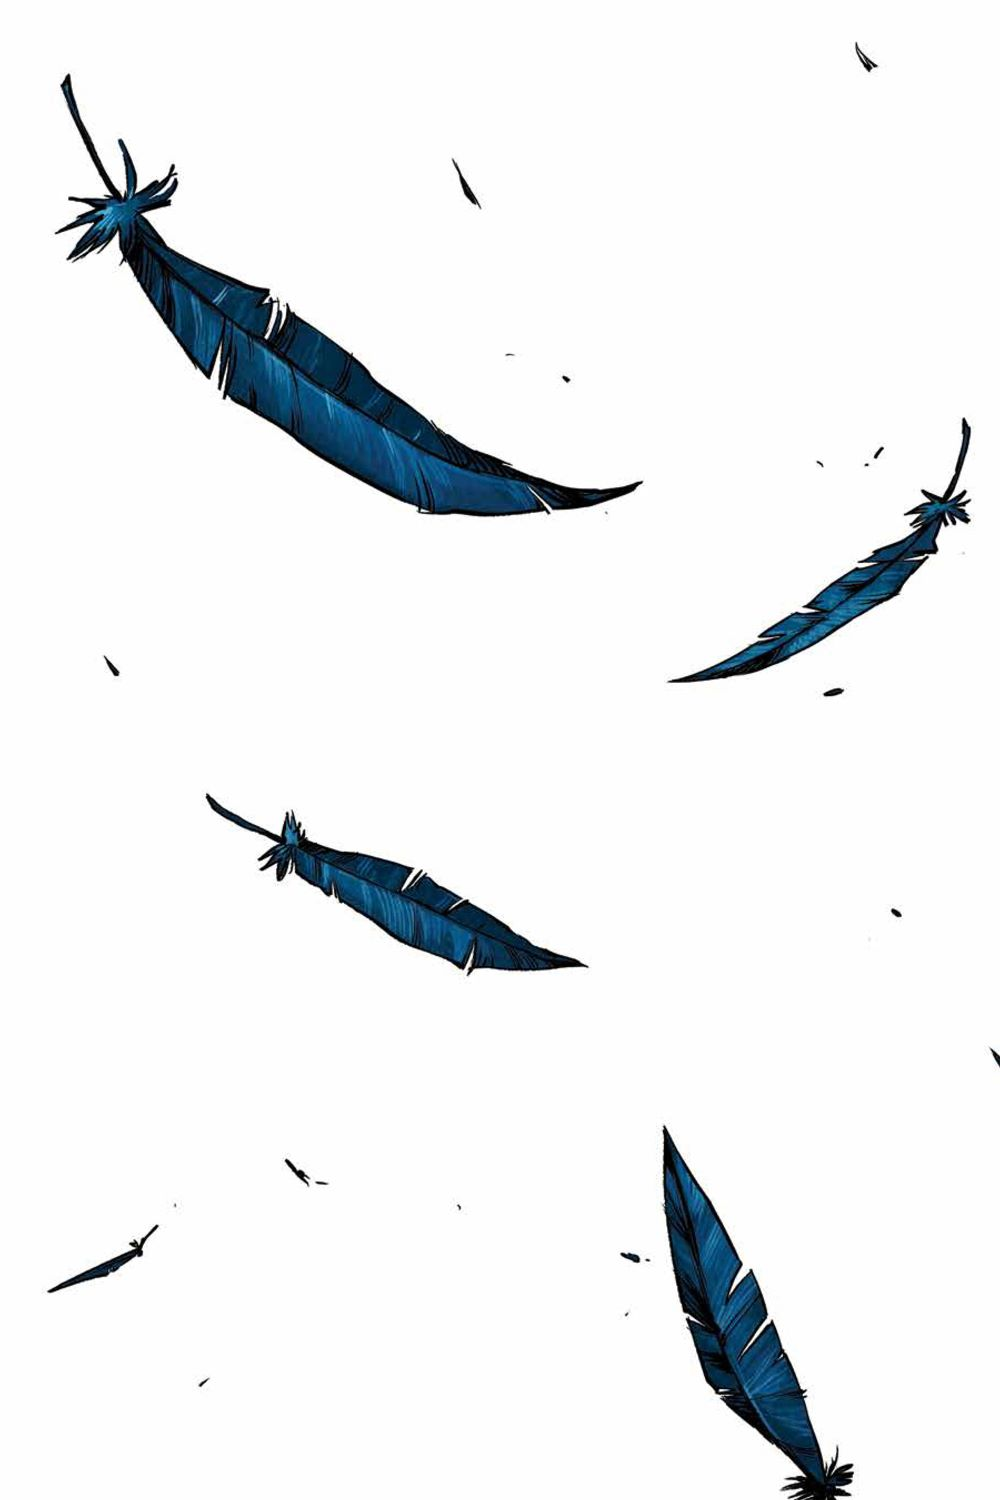 Wynd_v1_HC_PRESS_16 ComicList Previews: WYND VOLUME 1 THE FLIGHT OF THE PRINCE HC (COMIC BOOK SHOP EXCLUSIVE HARDCOVER EDITION)